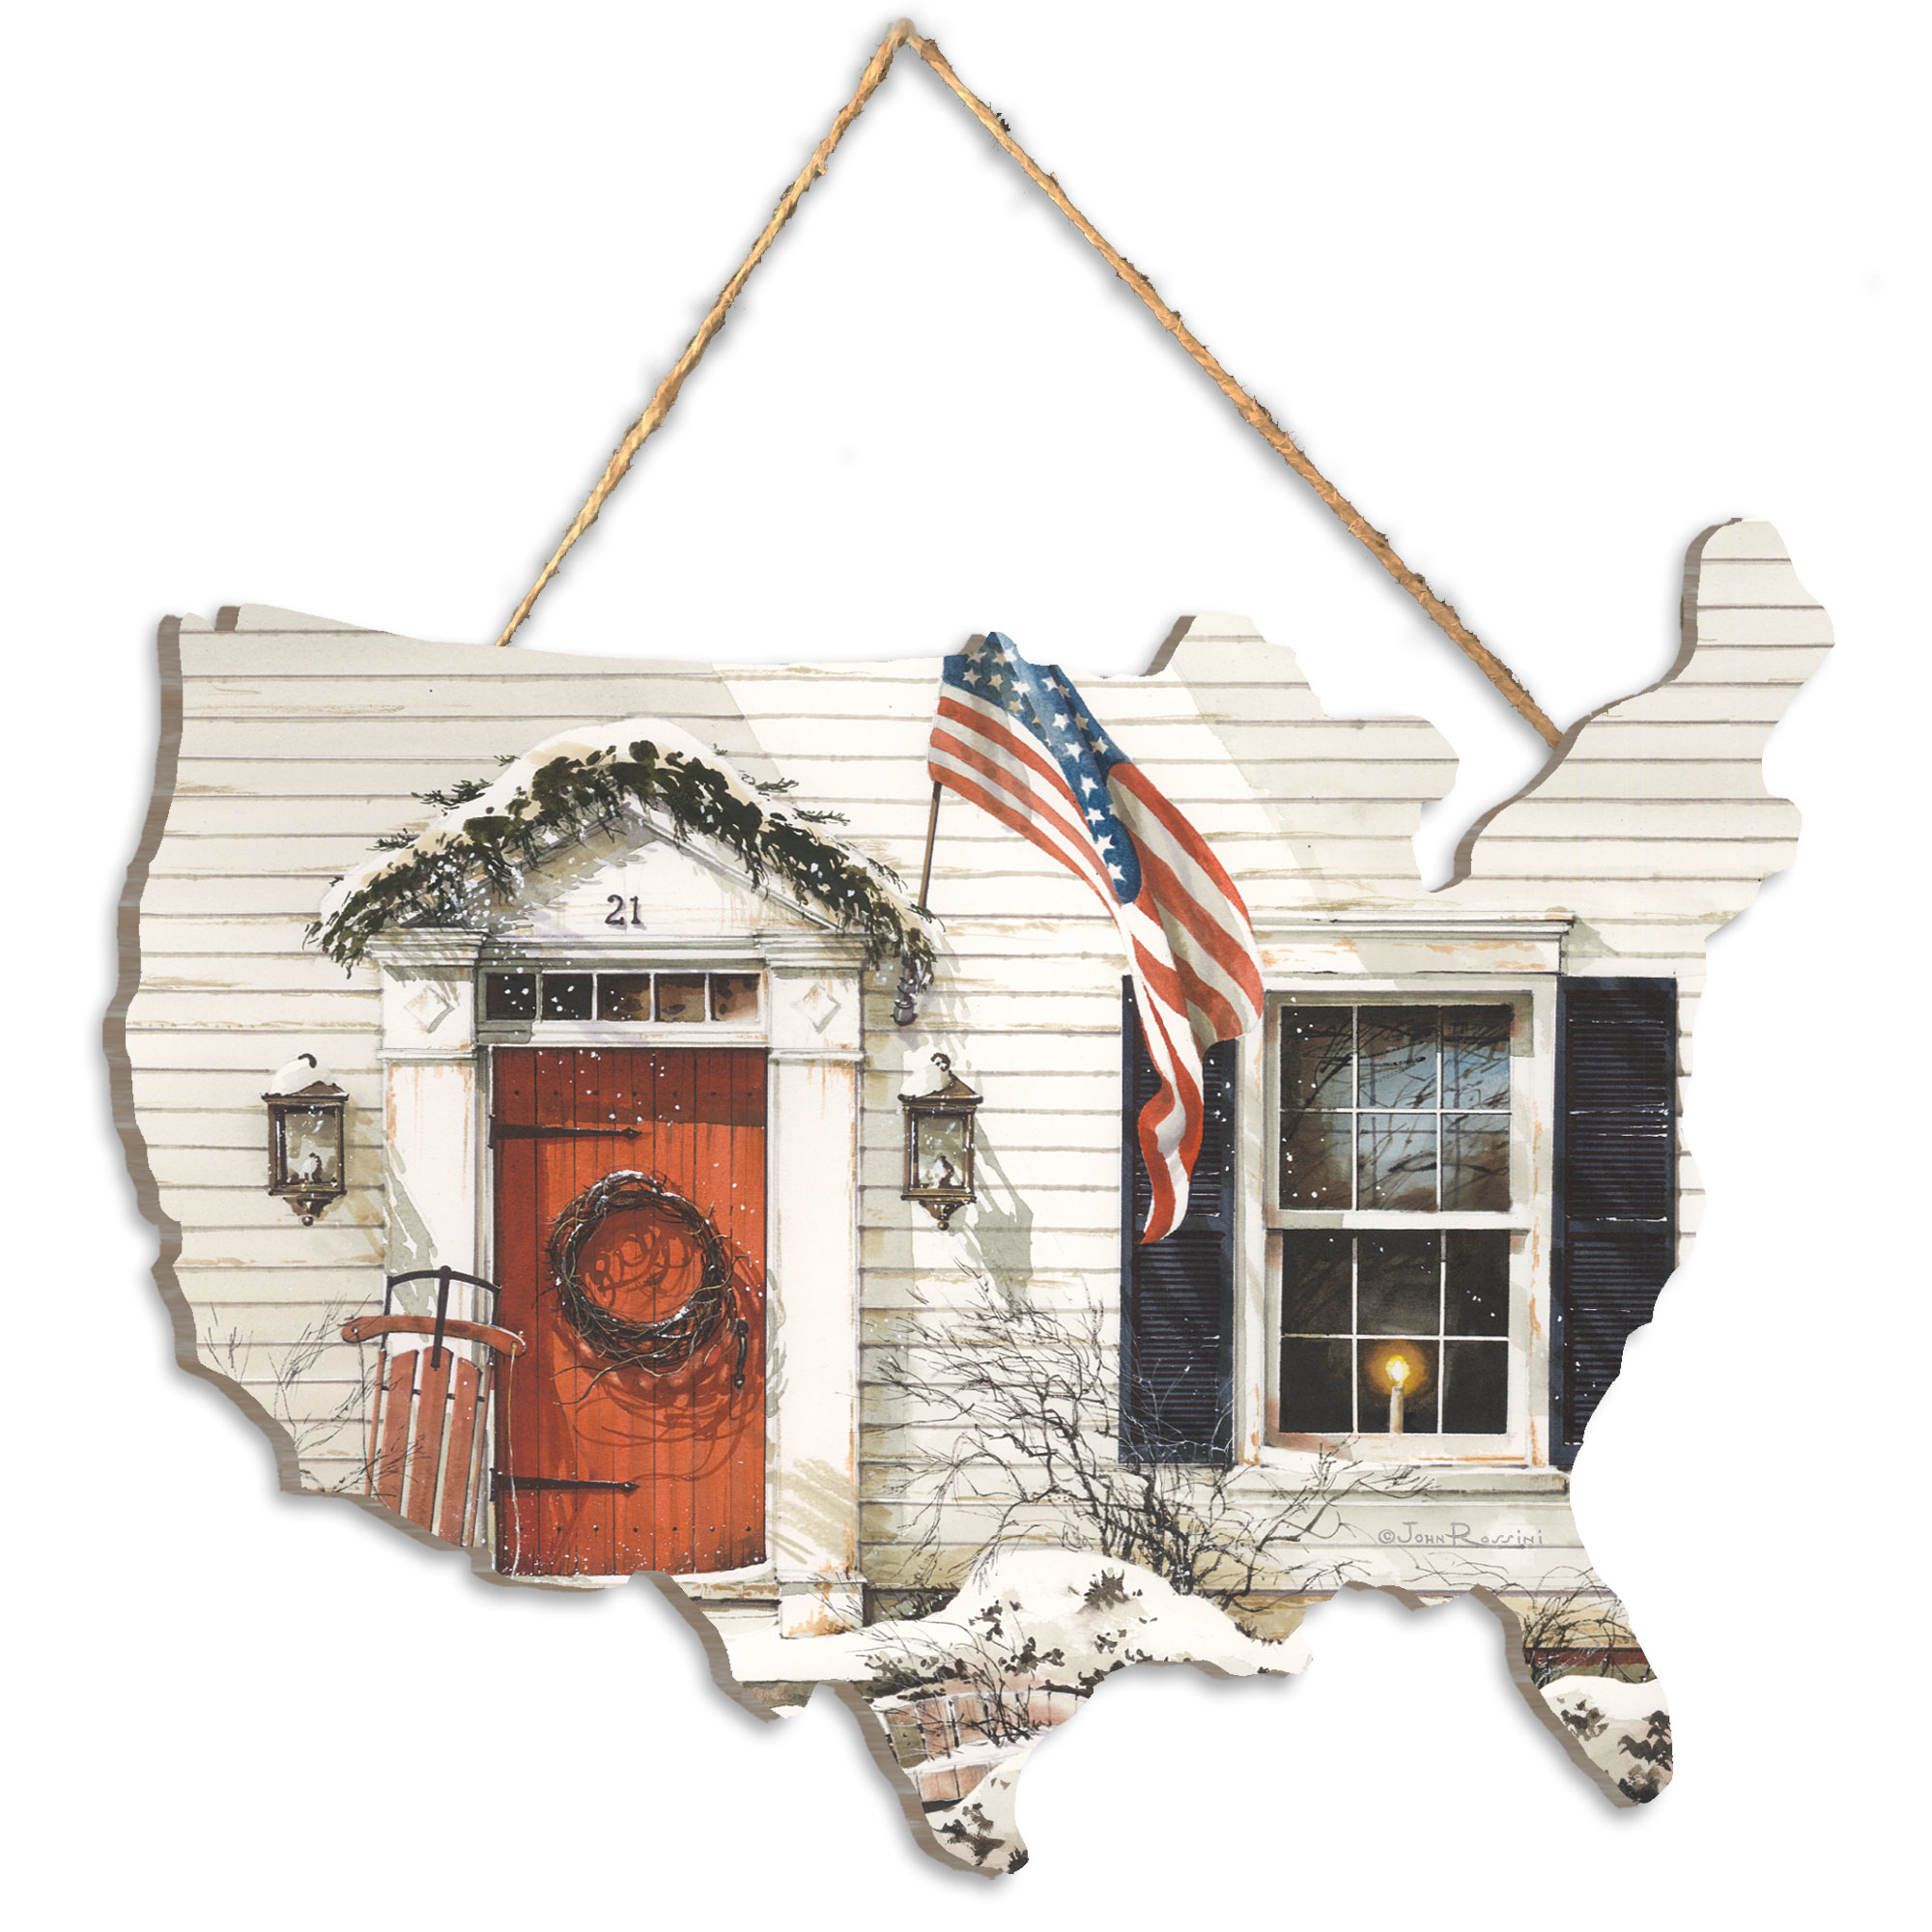 Jr177Us - 21 Main Street by artisan John Rossini. Applied print of a farm home with American flag in the shape of the United States. Approx 12x9 and arrives ready to hang. Primitive looking exterior of a home; with sled leaning against doorcase. Made in the USA by skilled American workers. * Artwork is printed on a wooden cutout in the shape of the United States Map * UV Protectant Coating protects artwork from fading. No glass is necessary. * Jute cord is attached on the back making this beautiful artwork ready to hang. * This Fine Home Decor piece made in the USA by Woman Owned Business (Wbe) is a perfect gift for a friend or relative. *